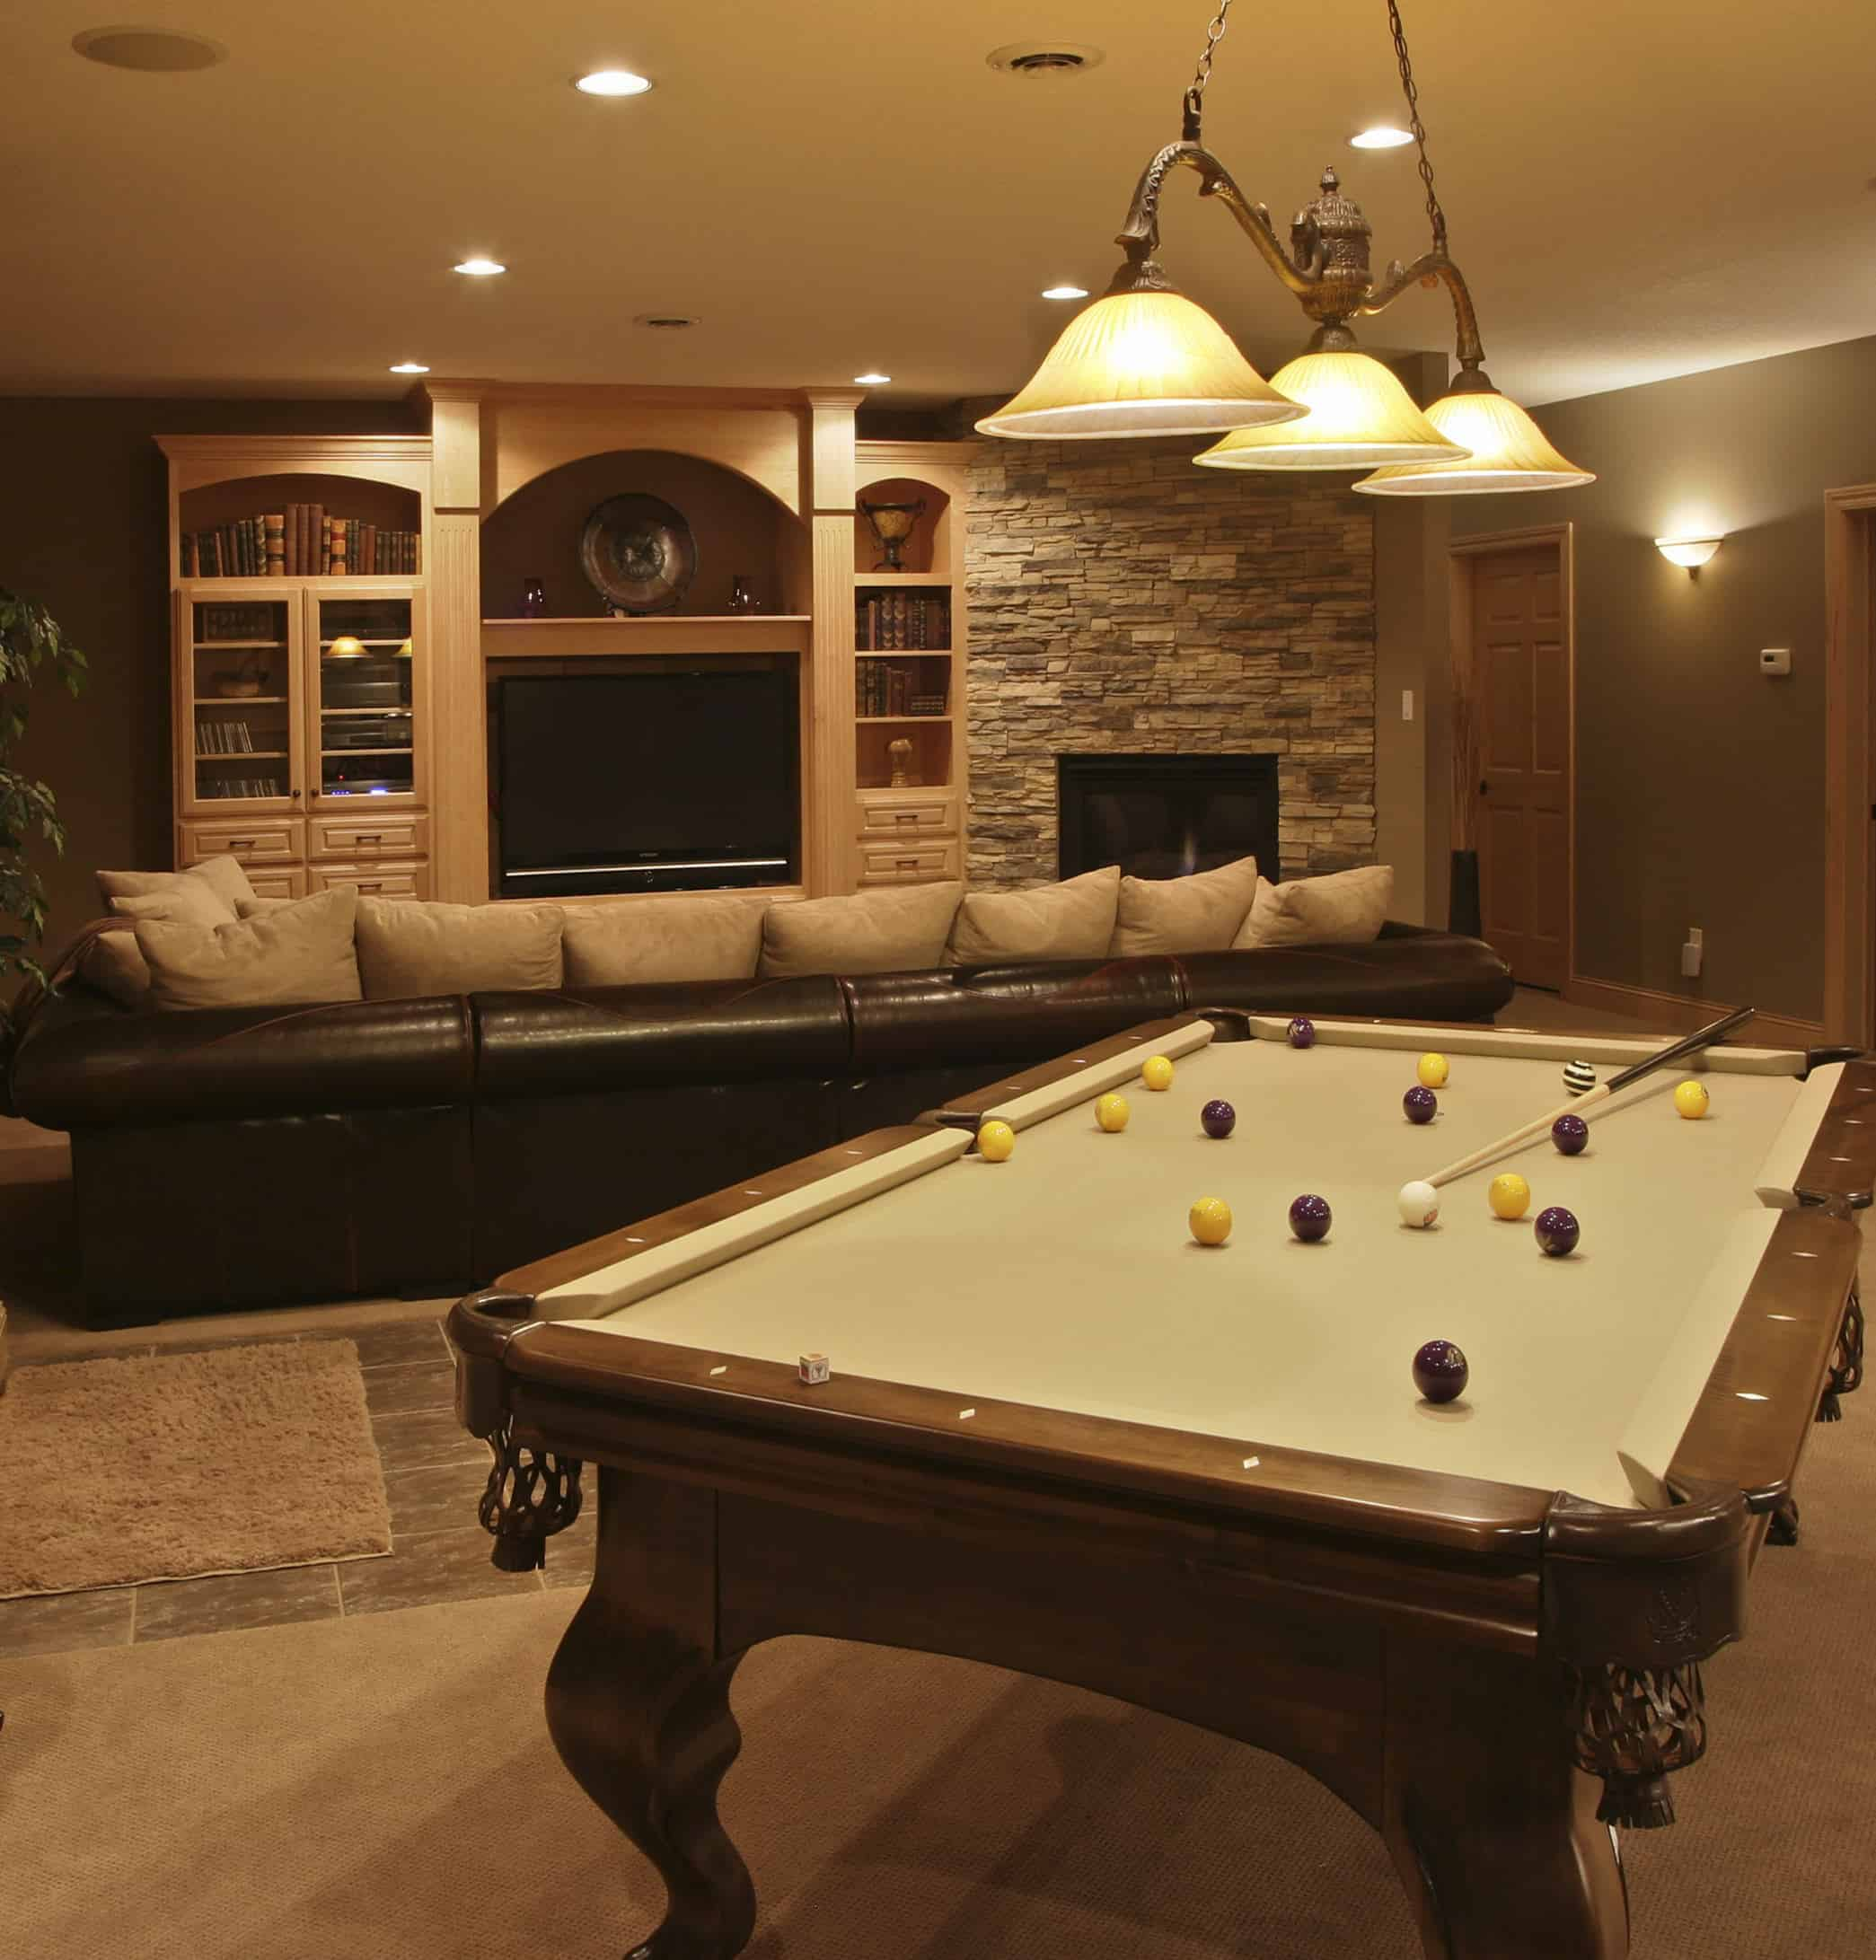 101 man cave ideas that will blow your mind in 2018 for Man cave designer